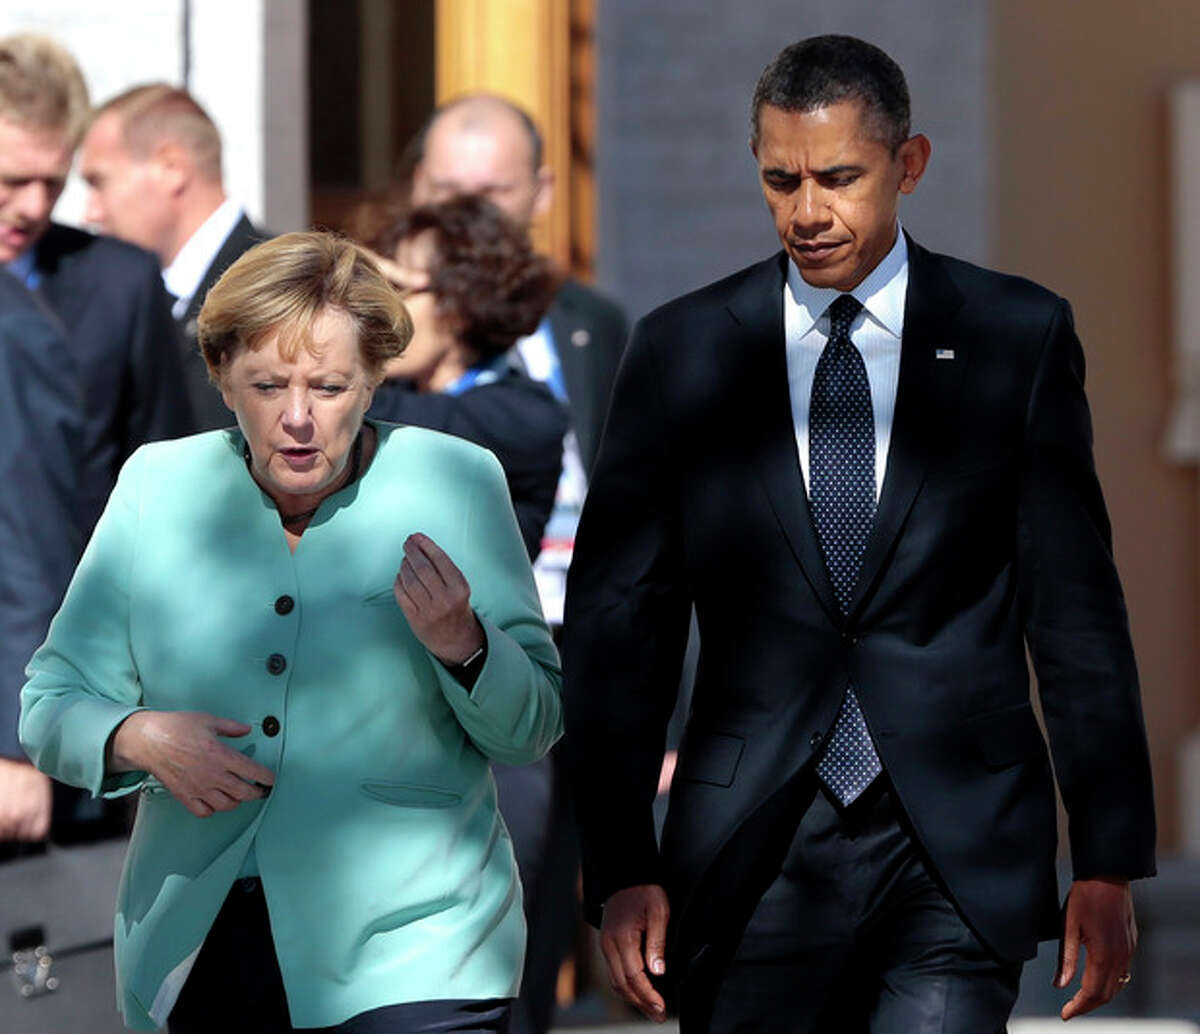 AP Photo/Ivan Sekretarev, File In this Sept. 6, file photo, President Barack Obama, right, walks with Germany's Chancellor Angela Merkel prior to a group photo of G-20 leaders outside of the Konstantin Palace in St. Petersburg, Russia.